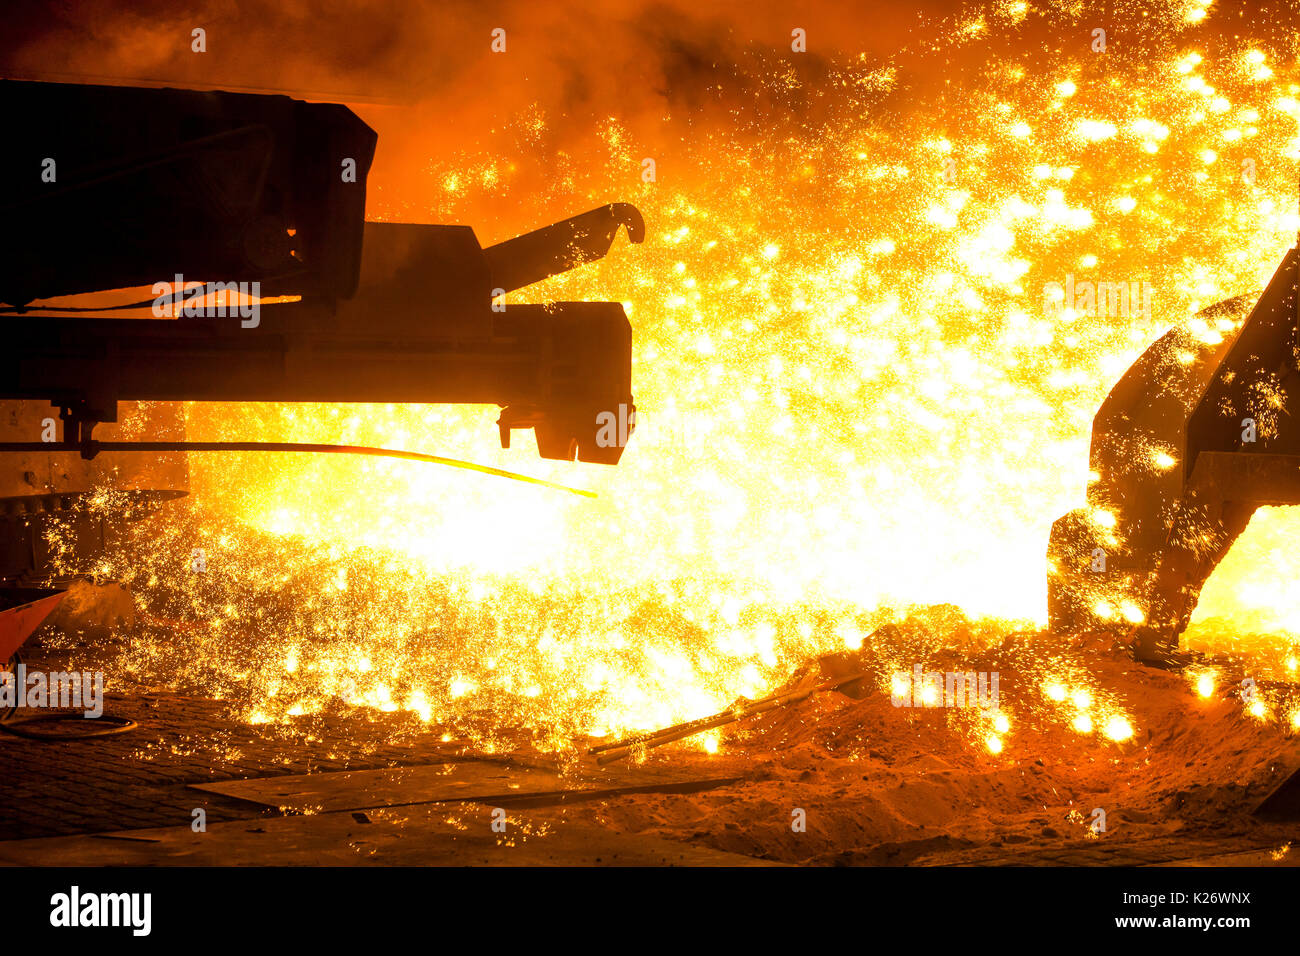 Tapping at furnace 8, ThyssenKrupp ironworks, Duisburg, Ruhr area, North Rhine-Westphalia, Germany - Stock Image